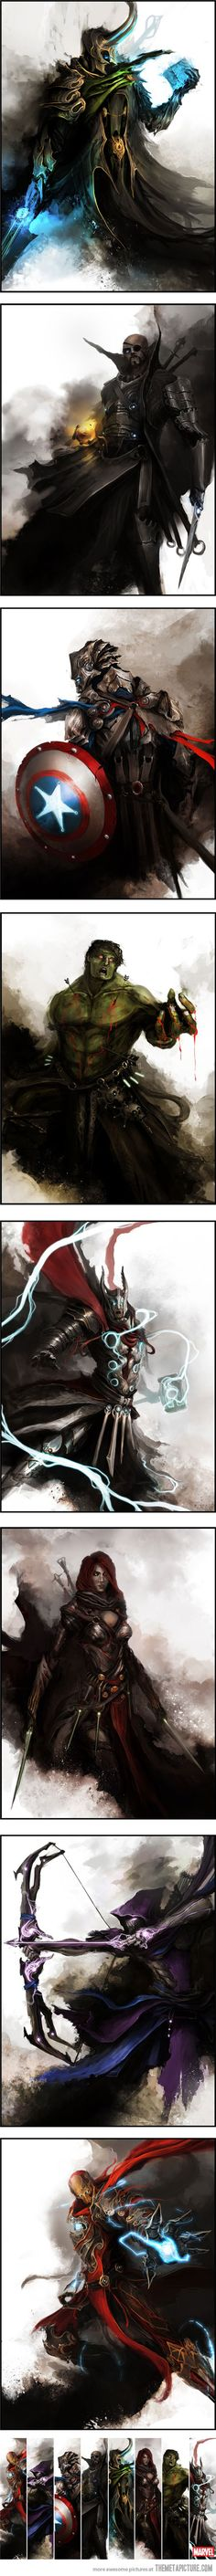 #TheAvengers Medieval Fantasy Style